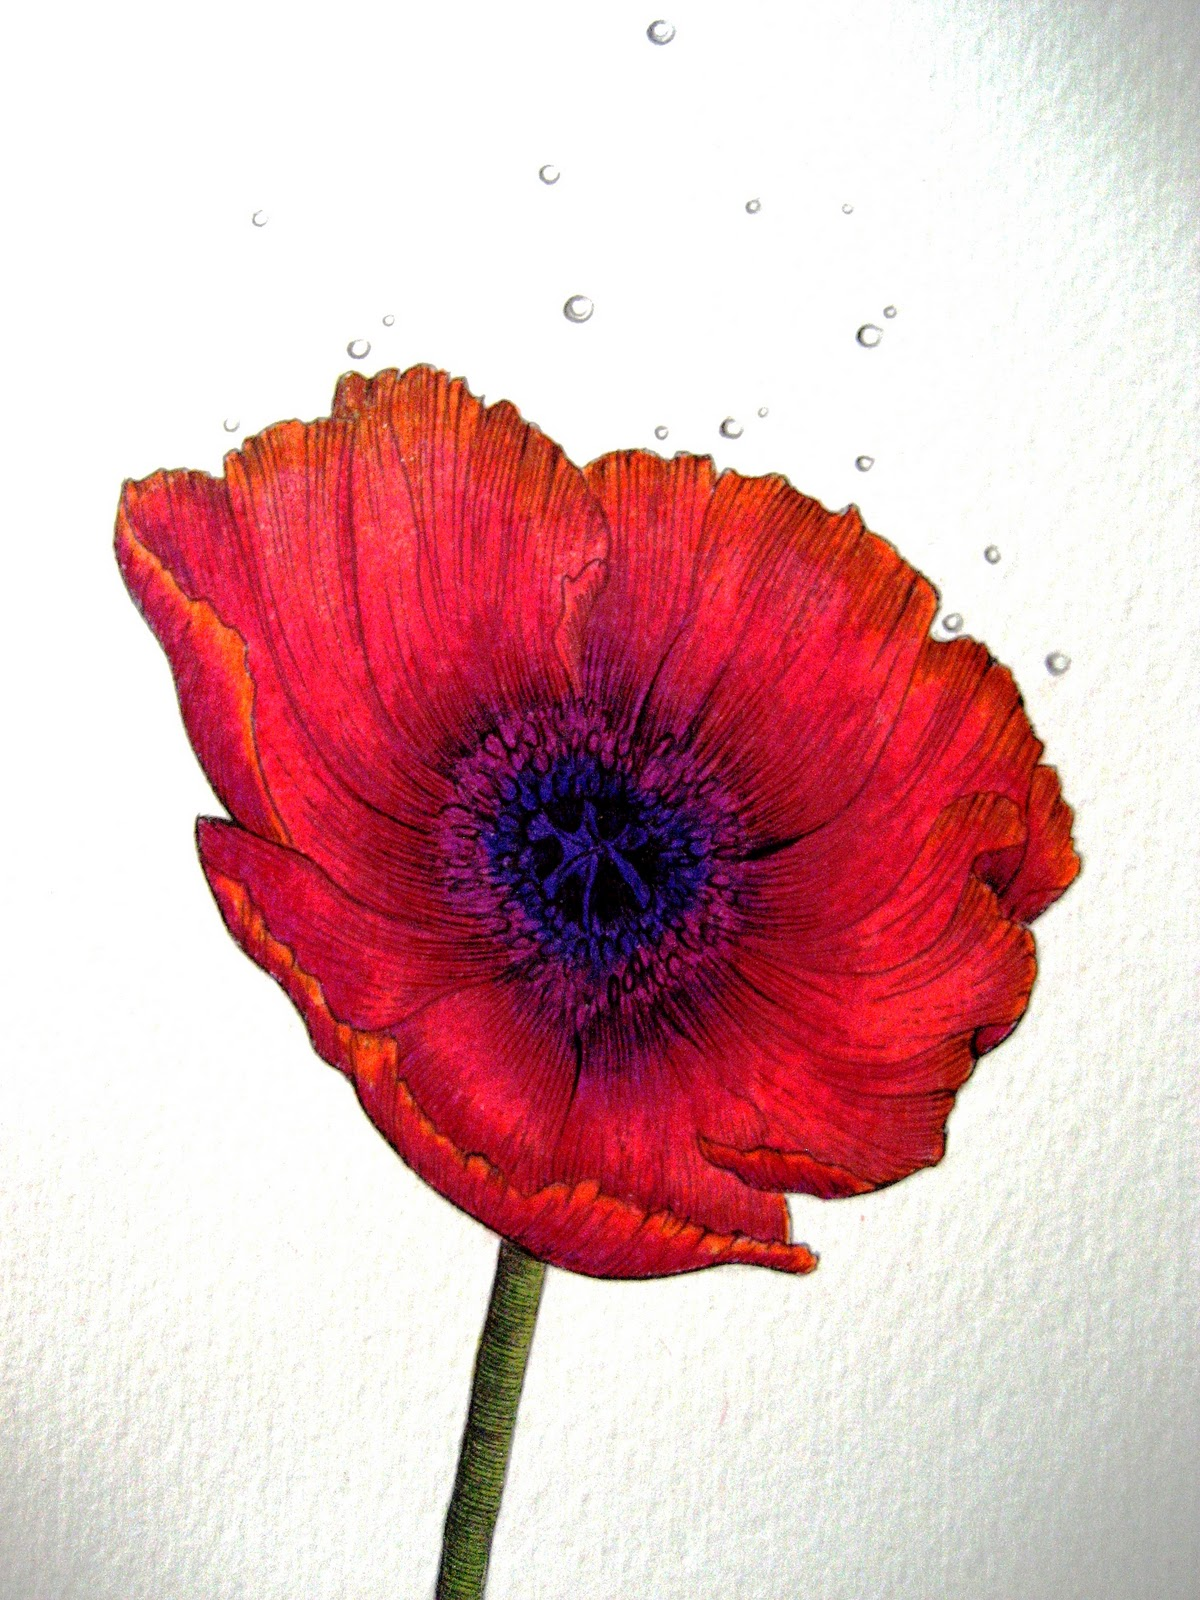 Drawing Poppies Related Keywords & Suggestions - Drawing ...